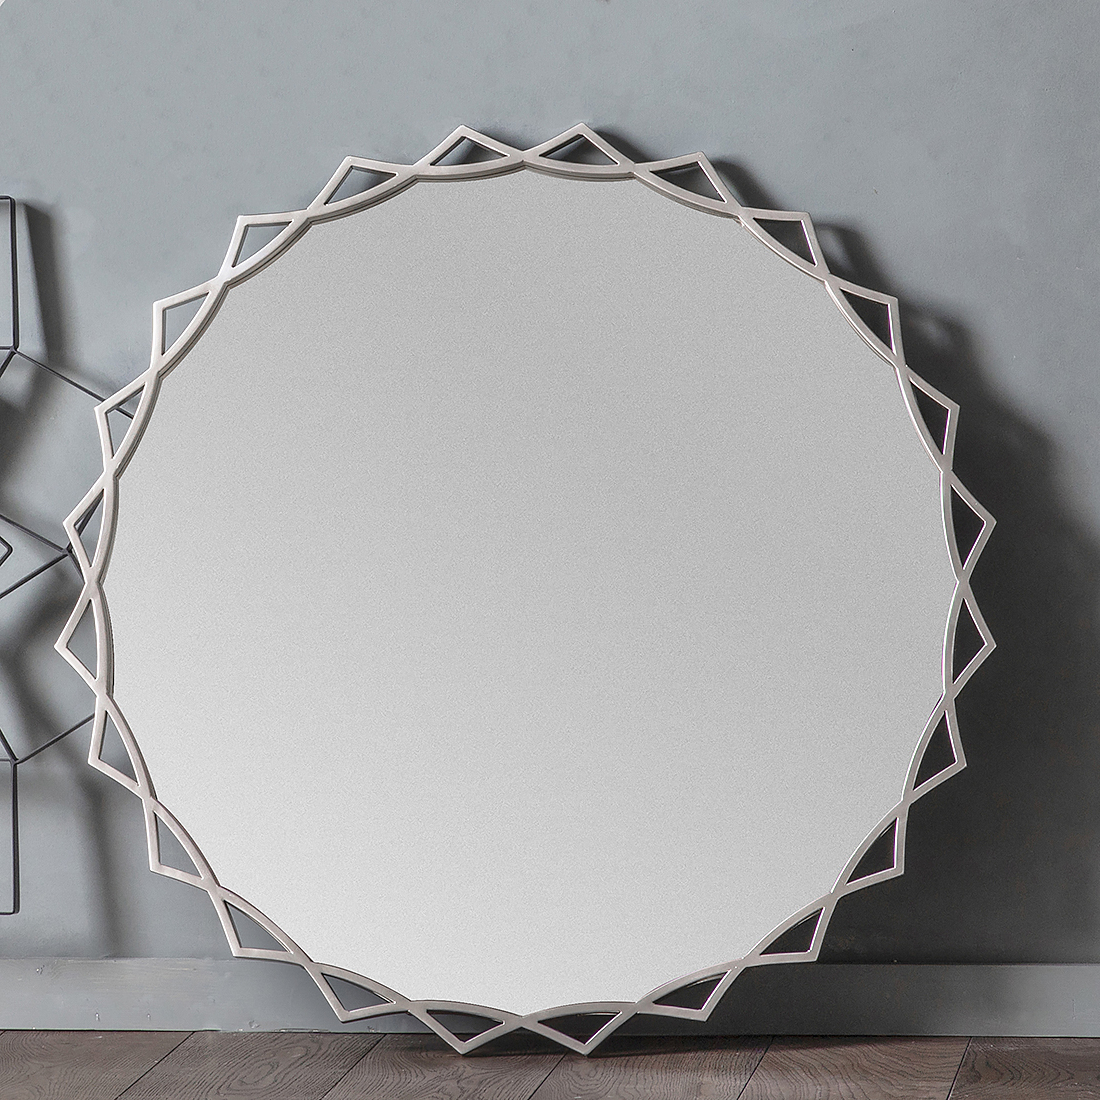 2020 Large Round Wall Mirrors Pertaining To Silver Sunflower Round Wall Mirror (View 13 of 20)